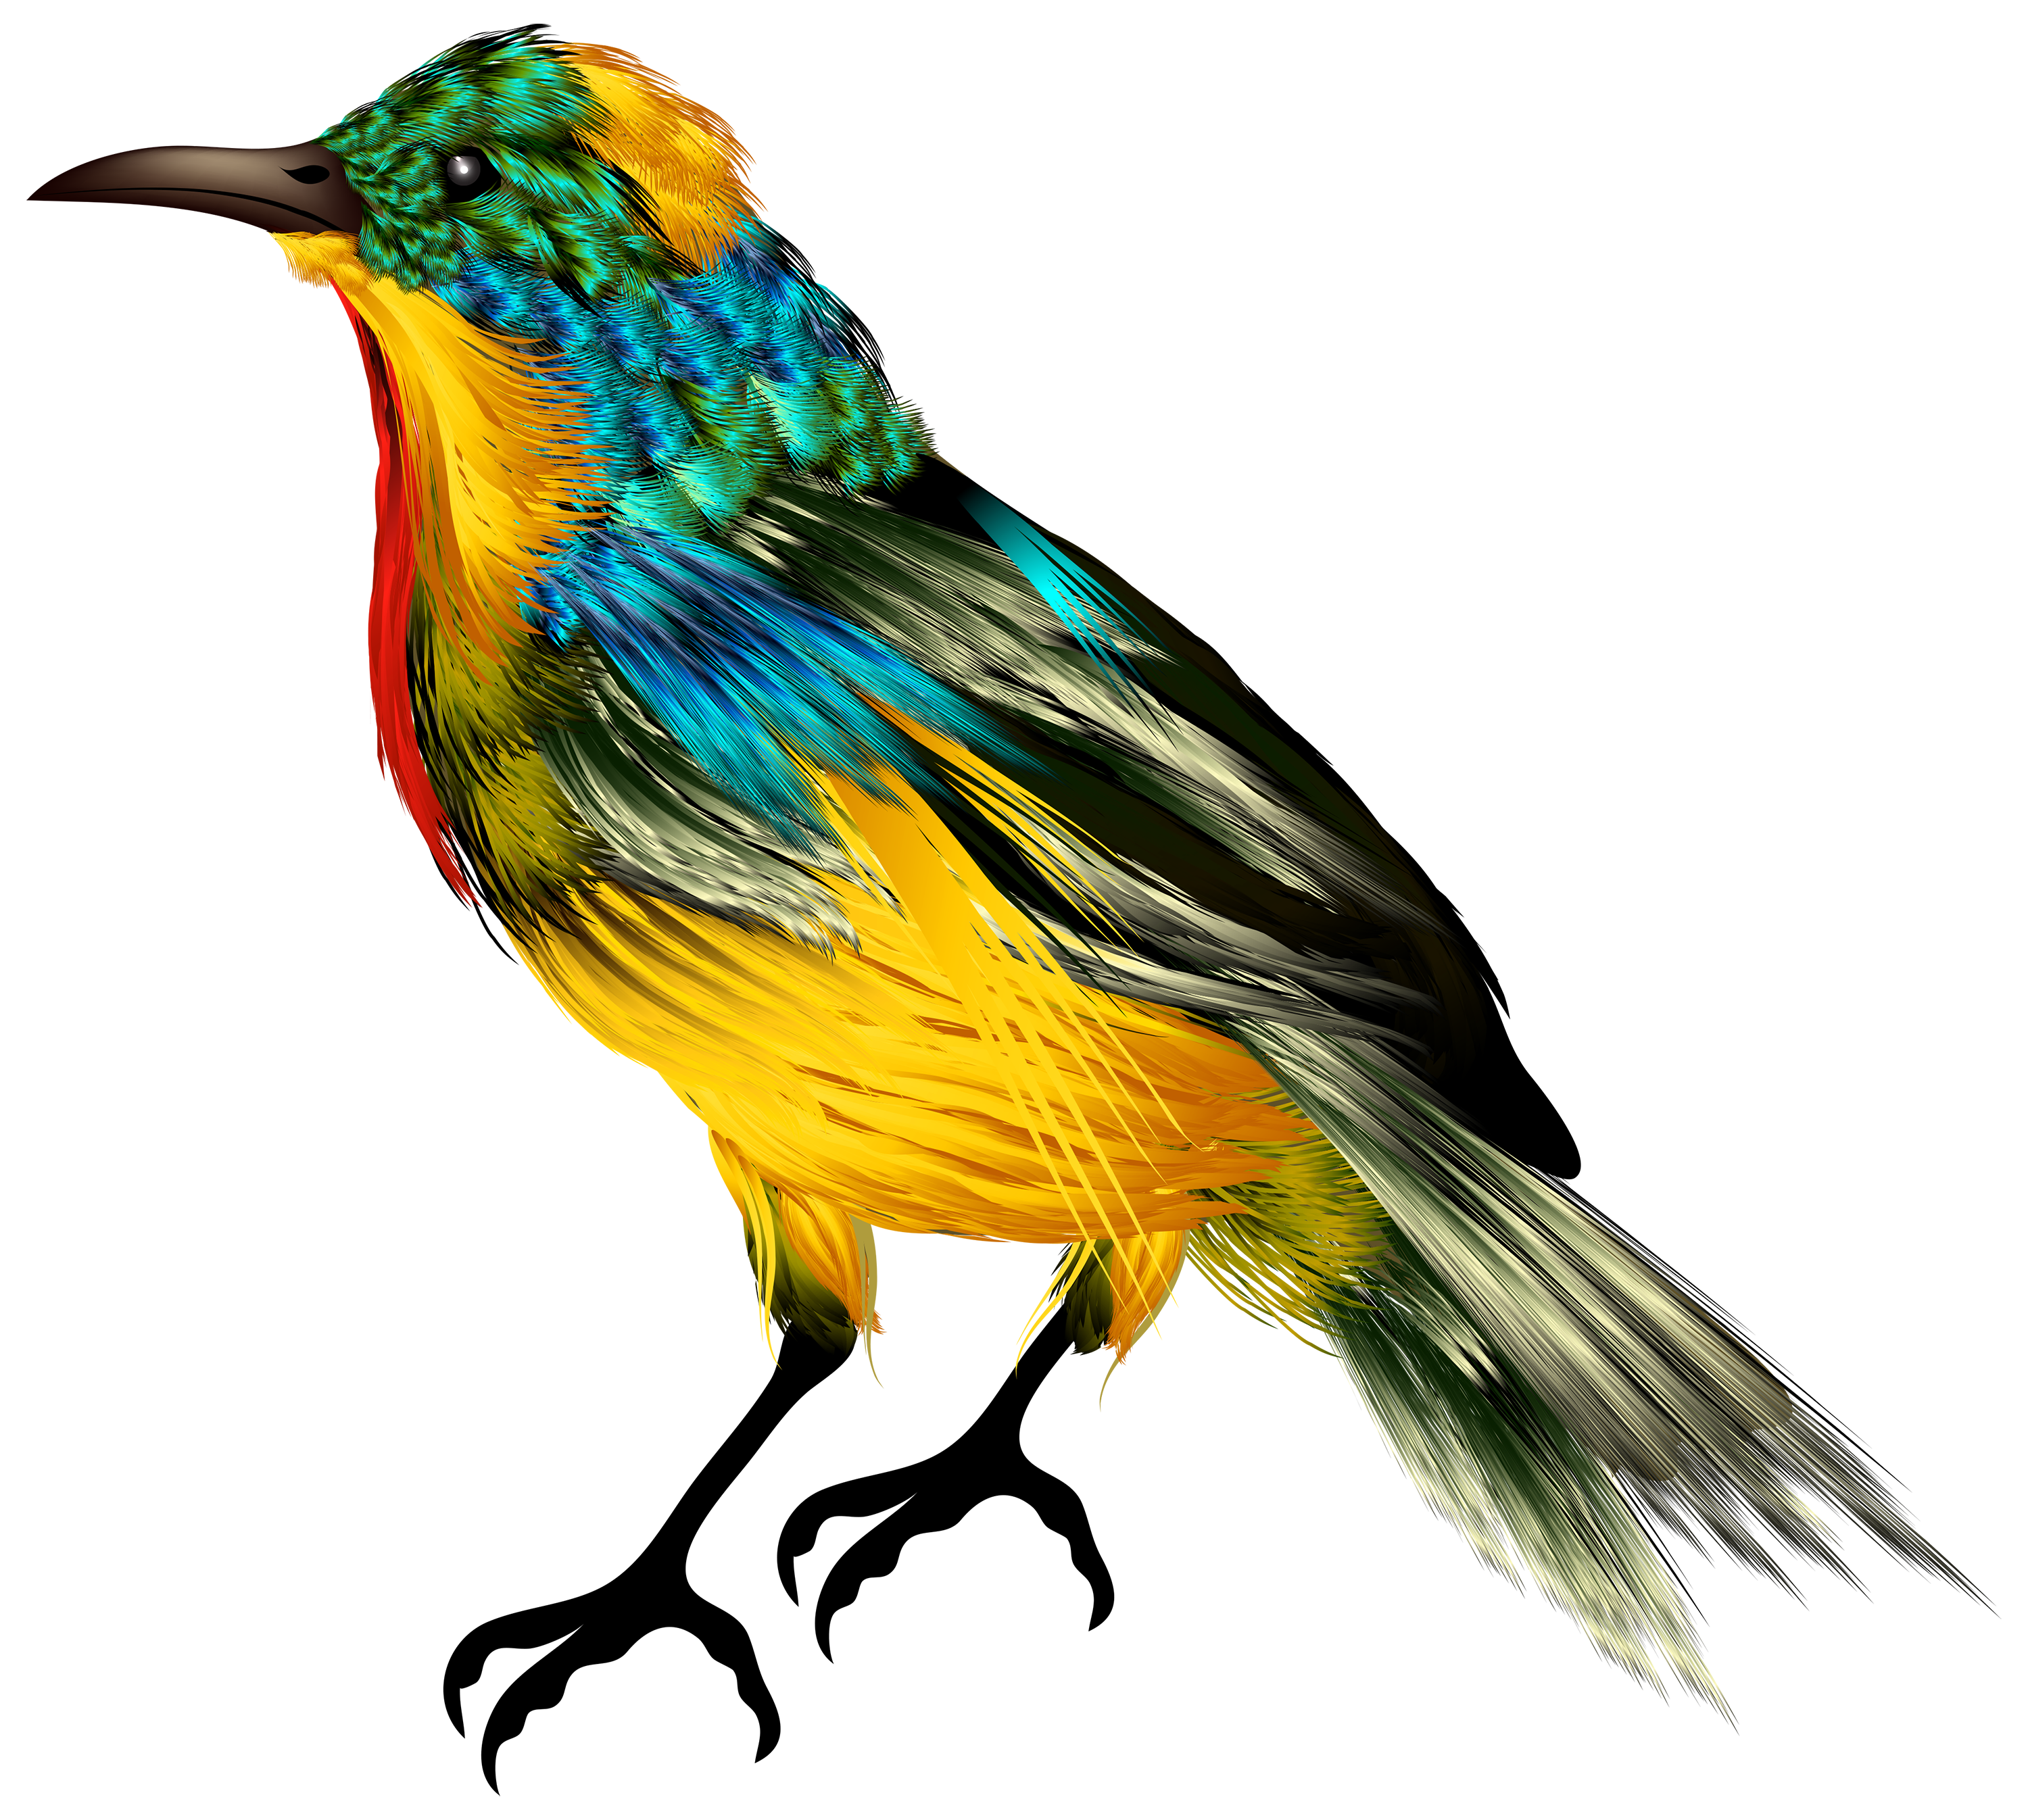 Colorful Bird Photo Free Transparent, Species, Beak, Wing